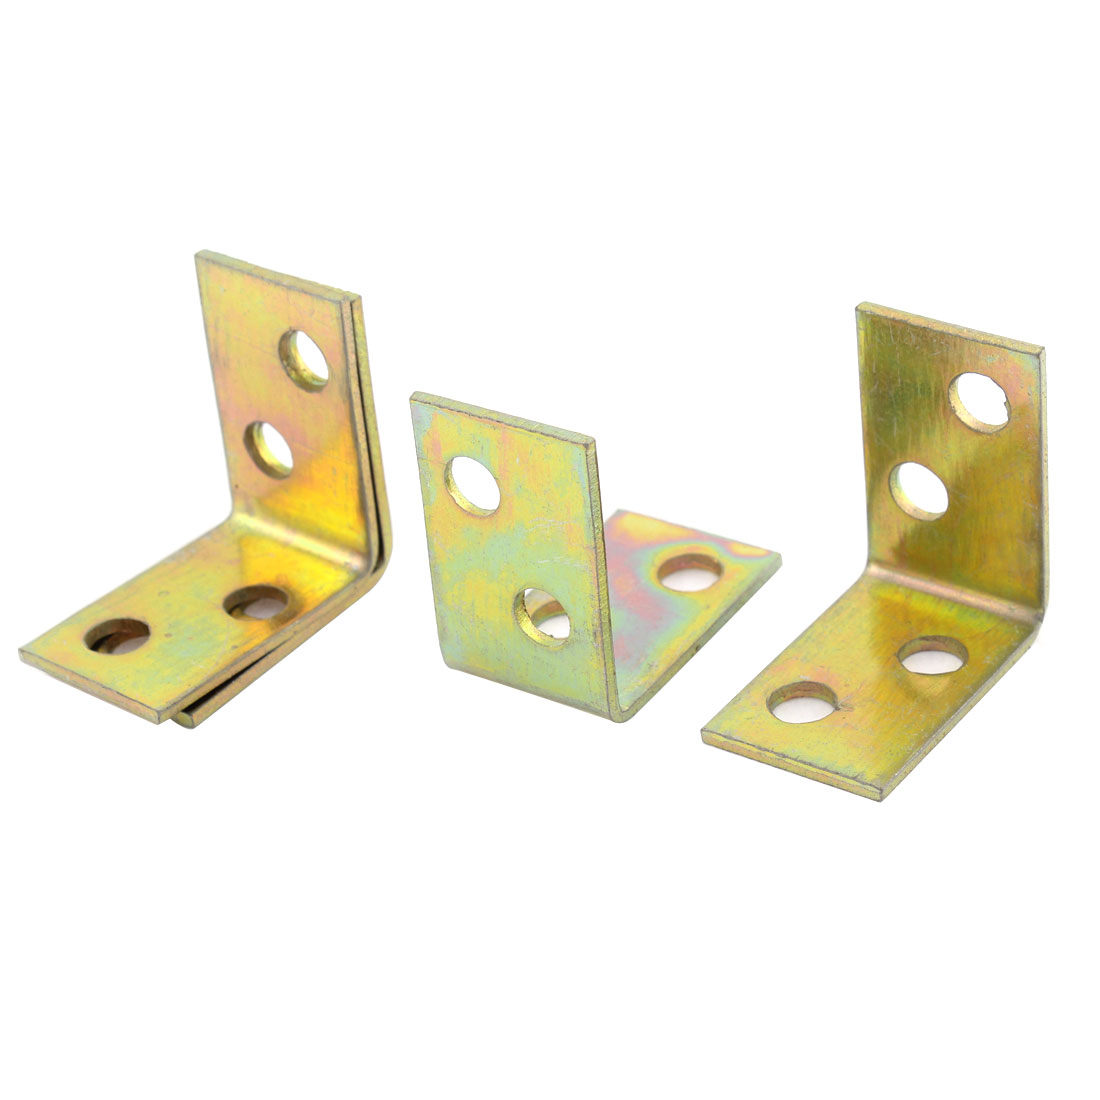 26mmx26mmx16mm Shelf Door 90 Degree 4Hole Corner Angle Brackets Brass Tone 4Pcs